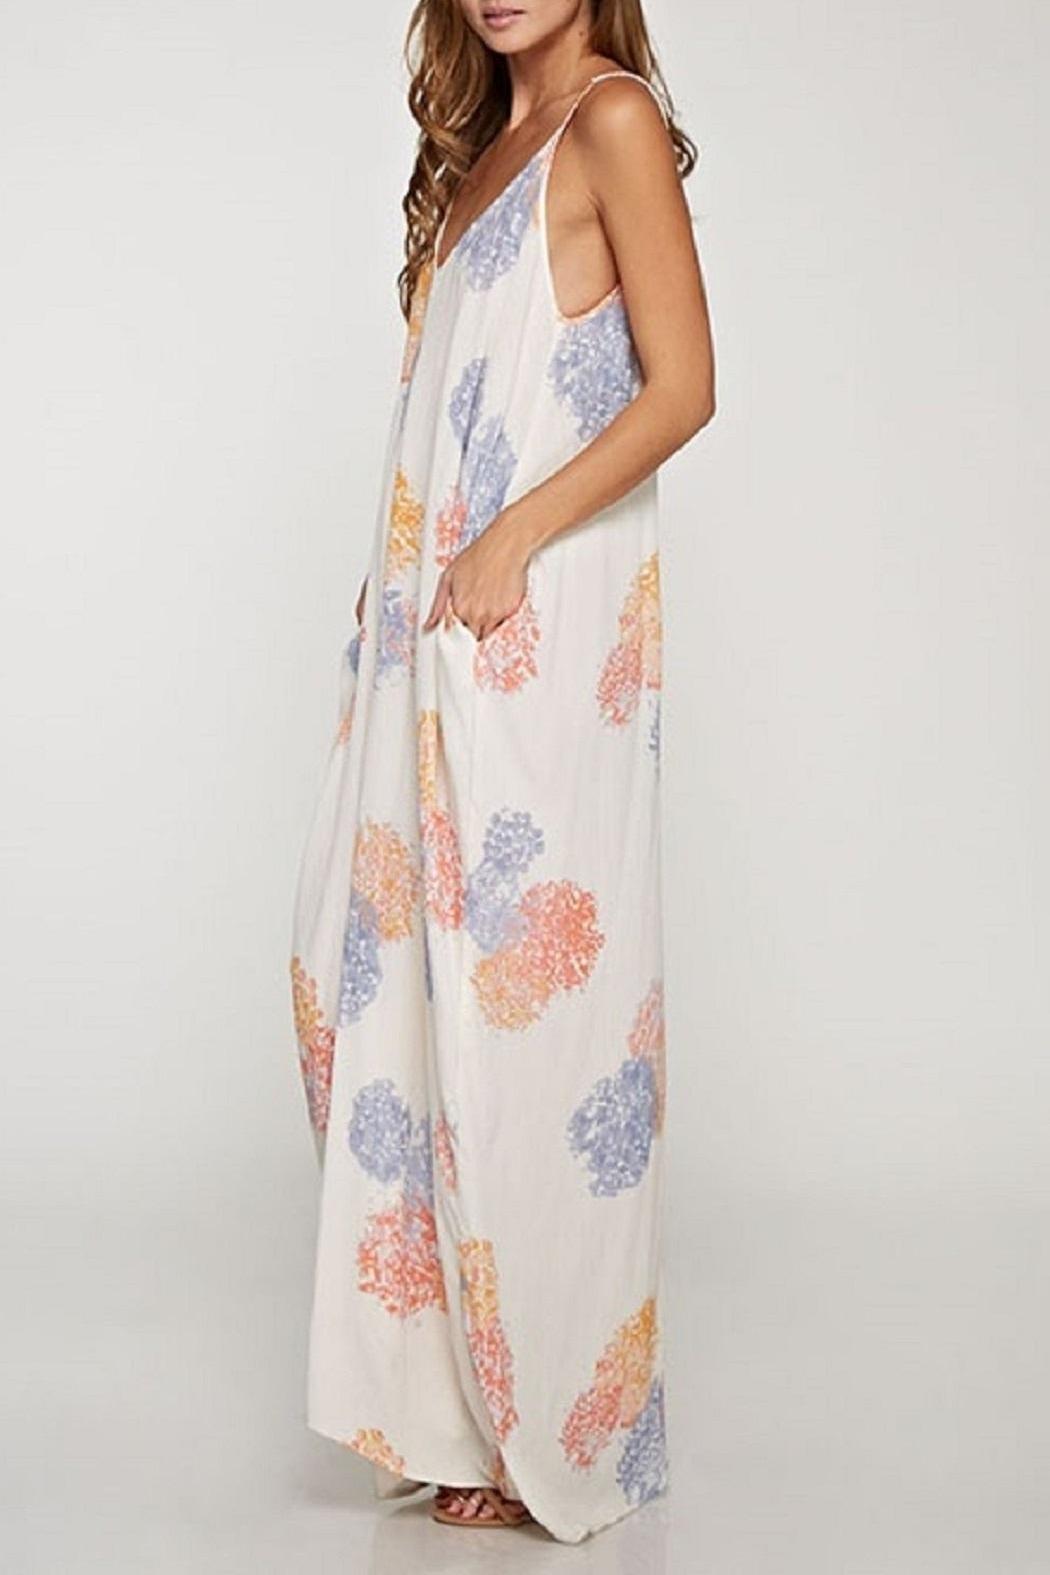 8195d03ca0 Lovestitch Cocoon Maxi Dress from Georgia by Posh Clothing Boutique ...